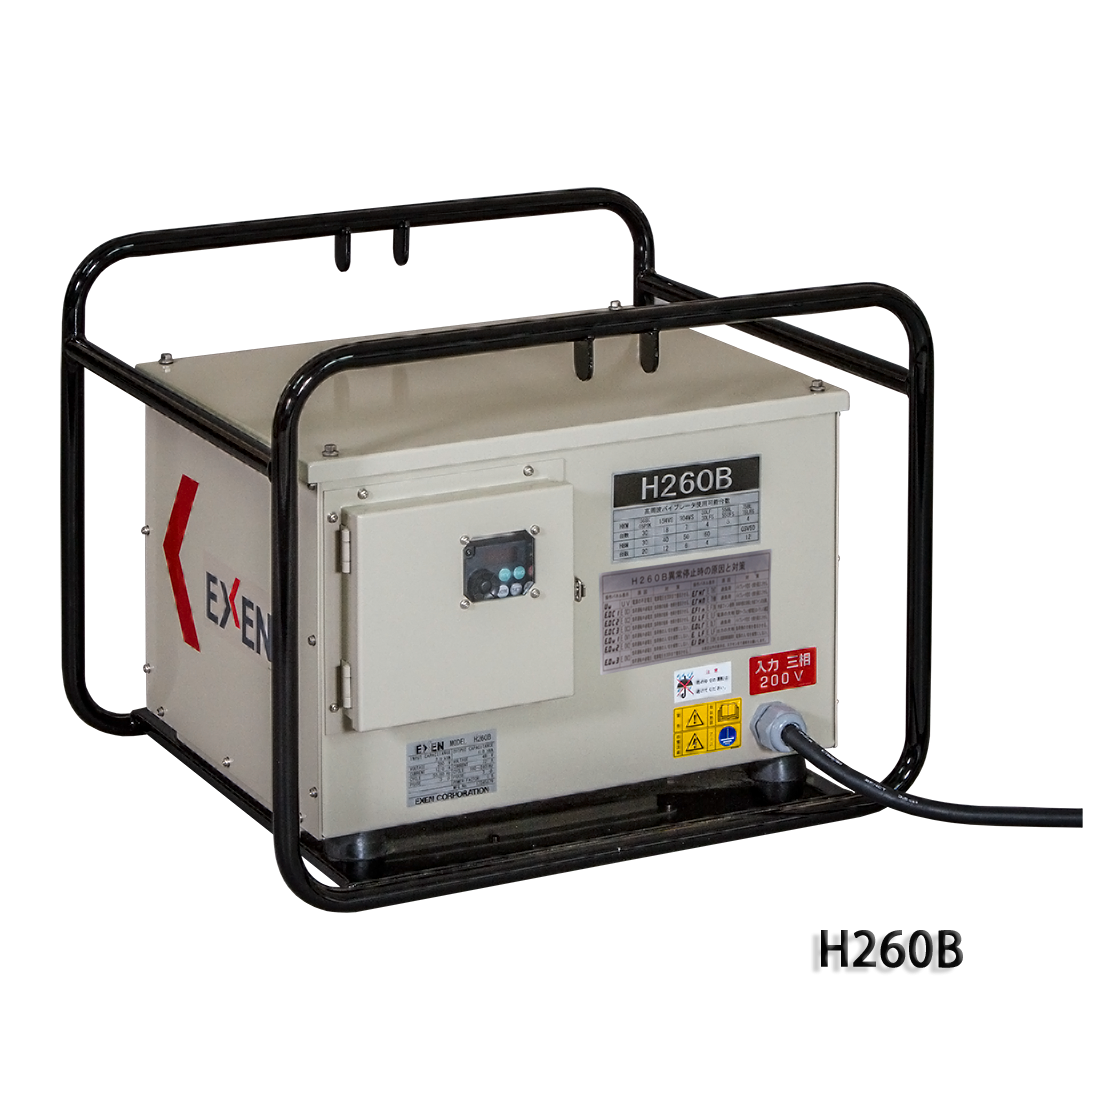 High frequency inverter H260B - h frequency inverter - EXEN